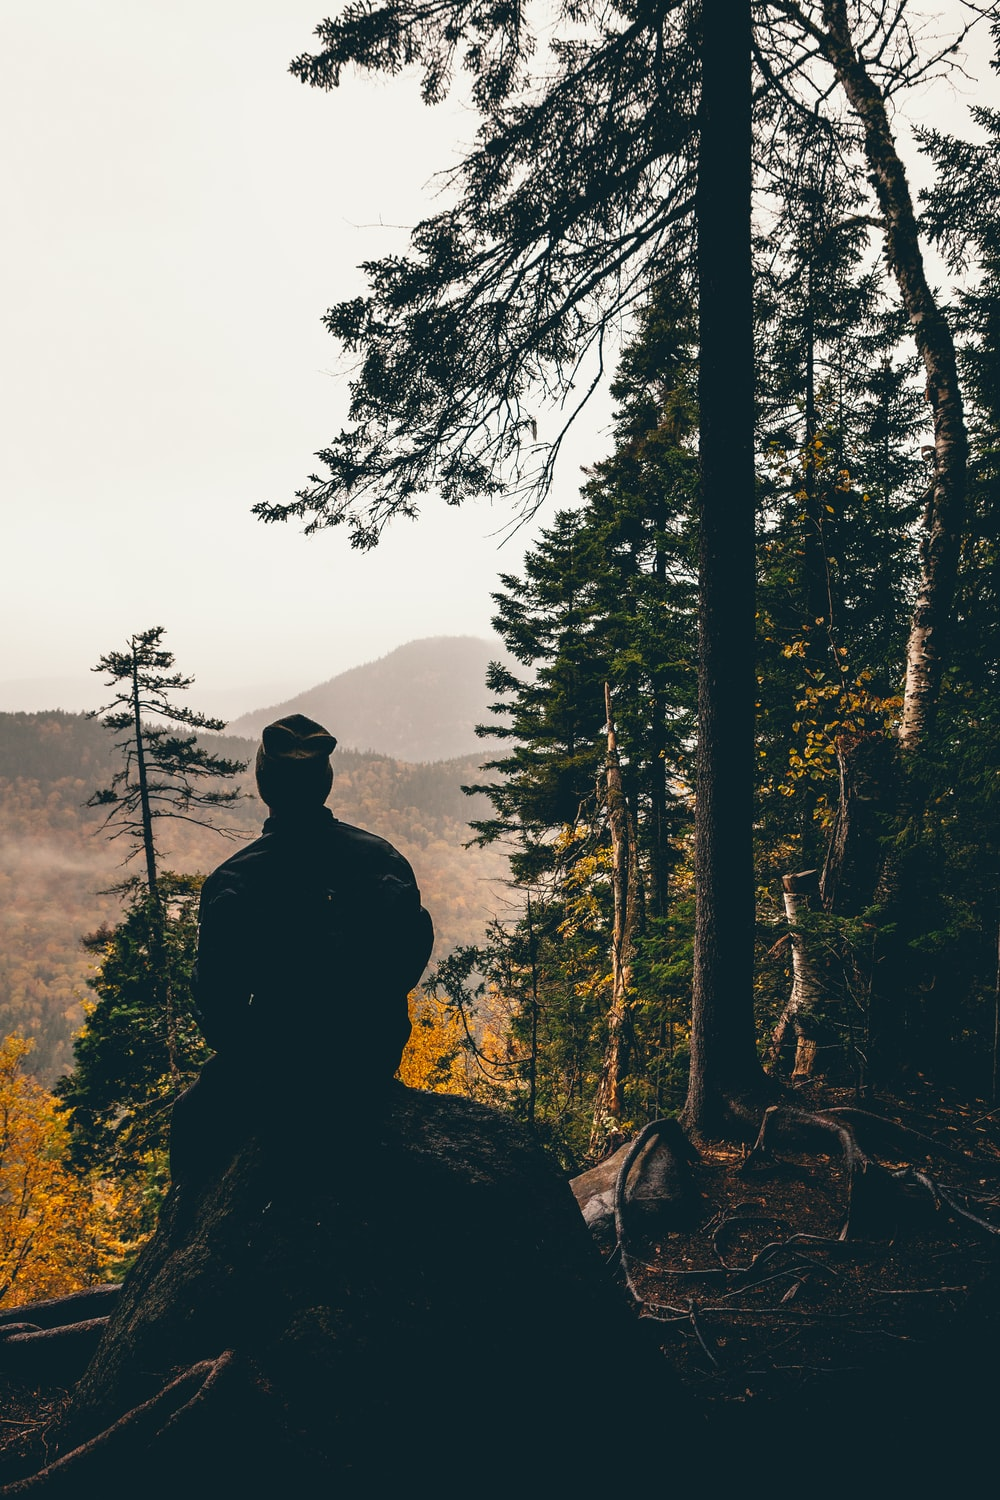 silhouette photo of man sitting on rock in front of tree